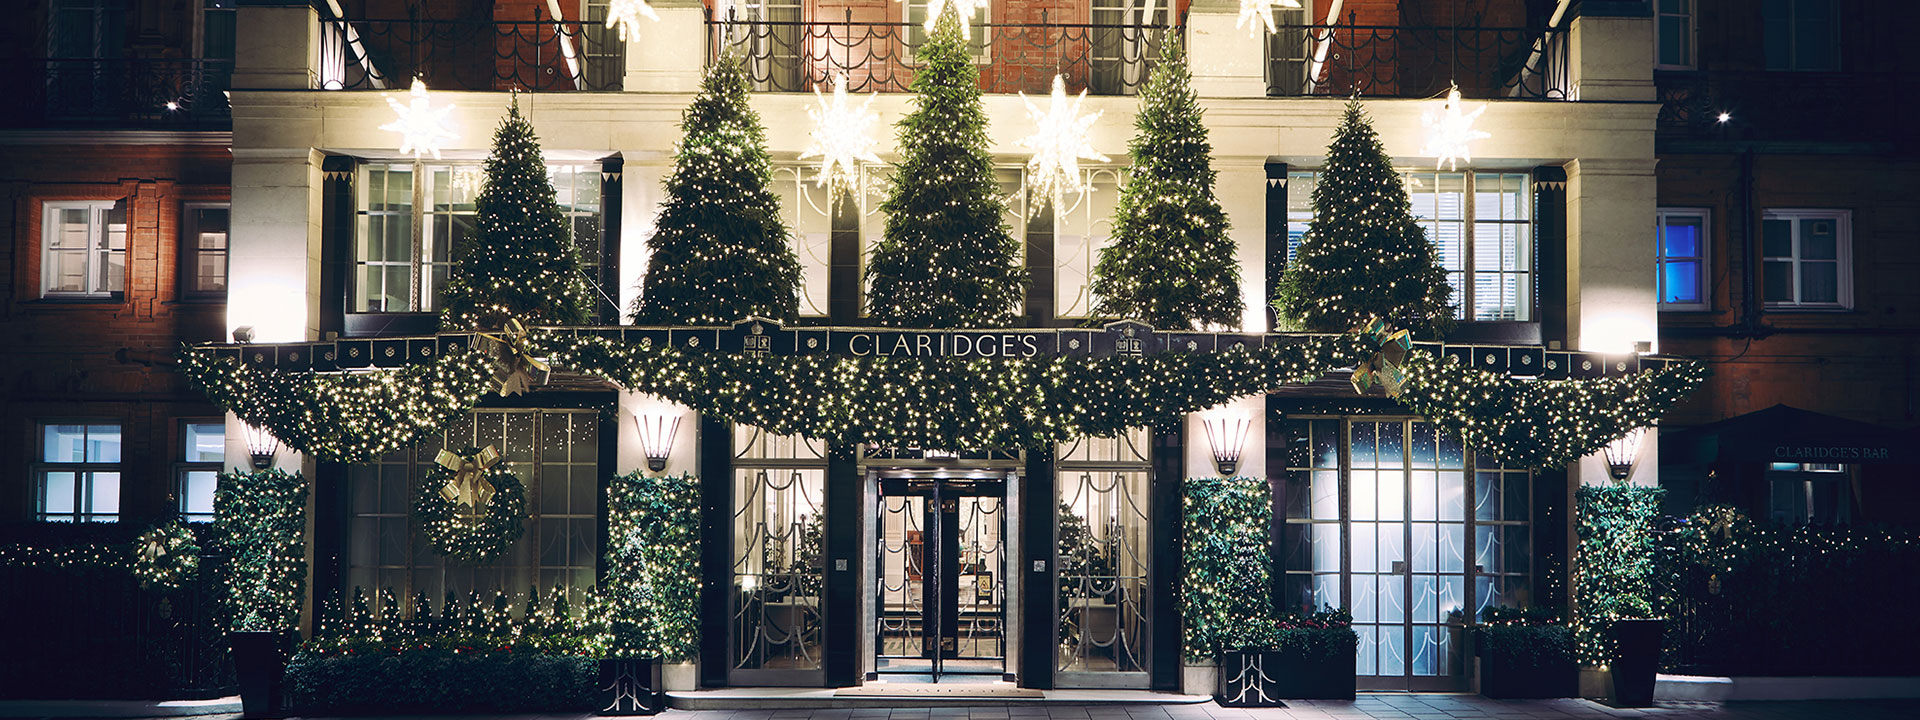 Christmas In London.Christmas At Claridge S An Unforgettable Christmas In London